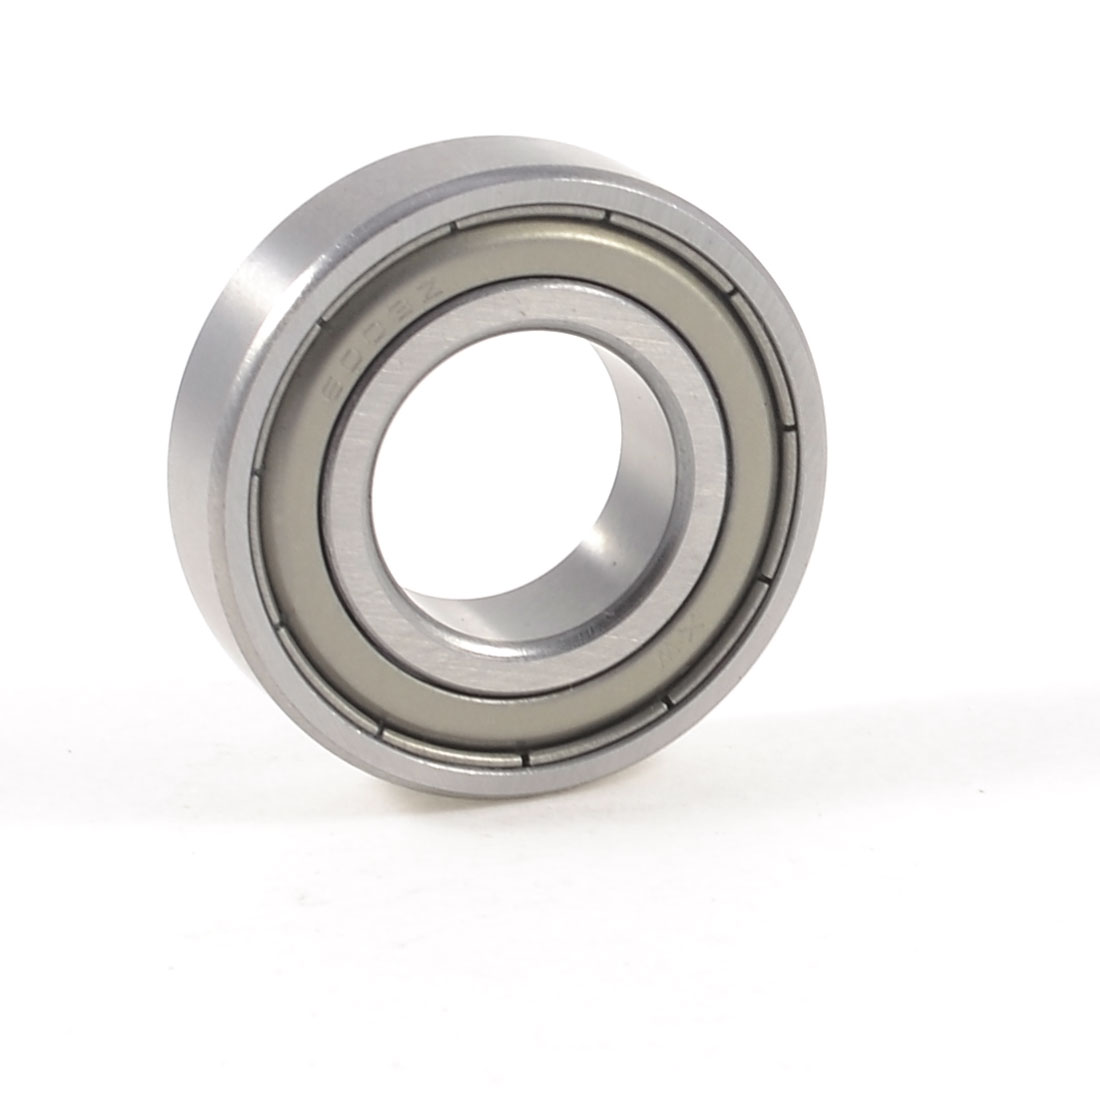 Metal 35mm x 17mm x 10mm Single Row Deep Groove Ball Bearing 6003Z